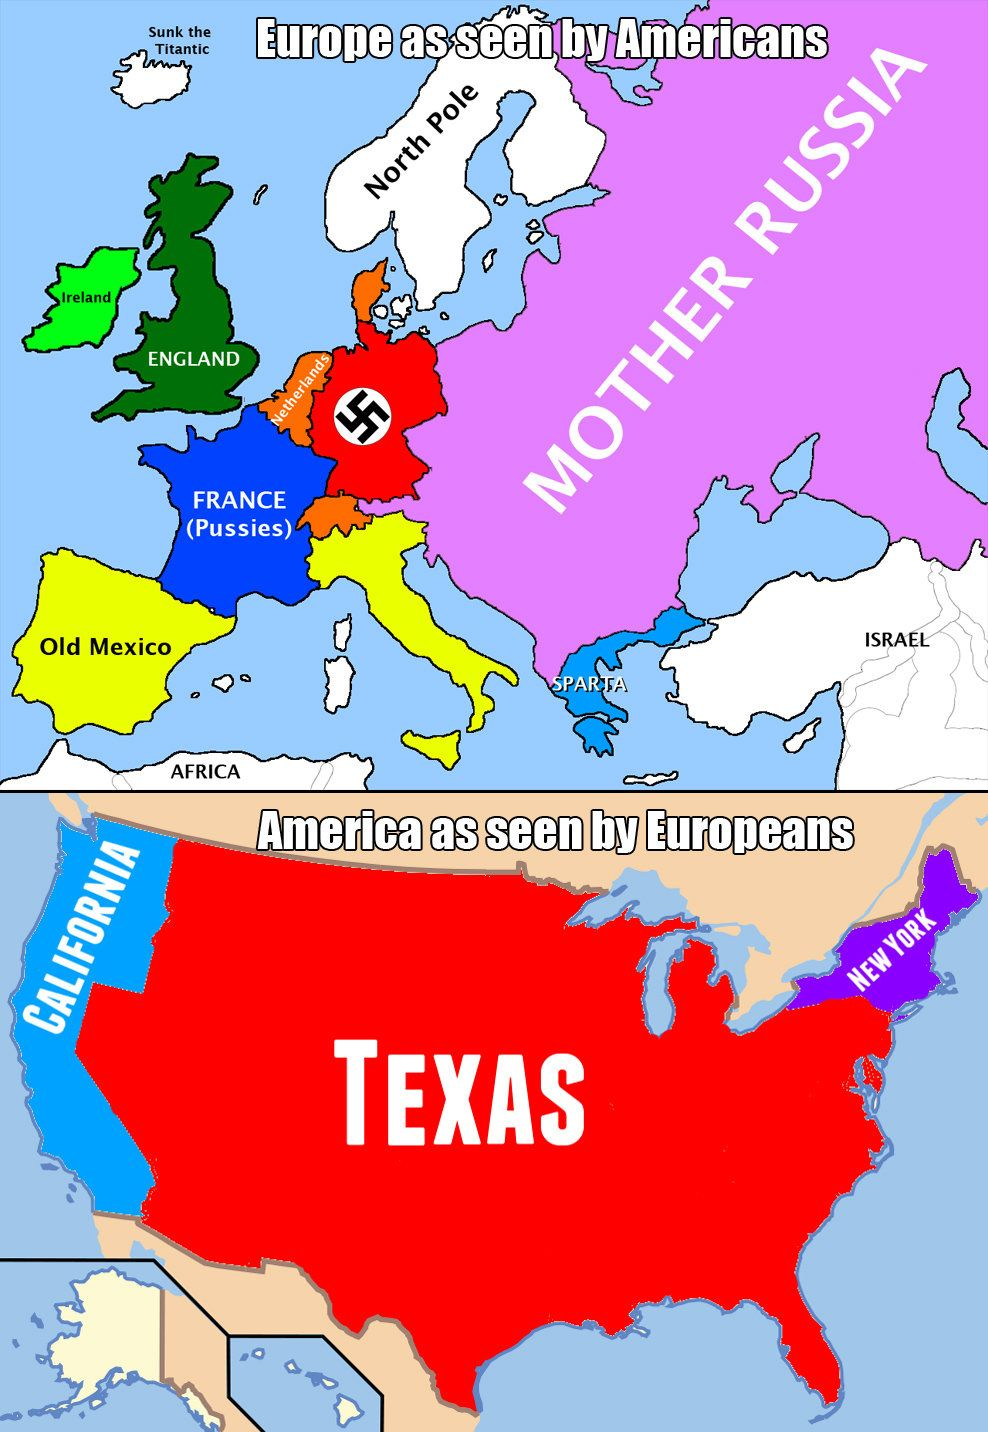 I saw this and all I could think of was America staring at all the other nations and them staring back omg XD